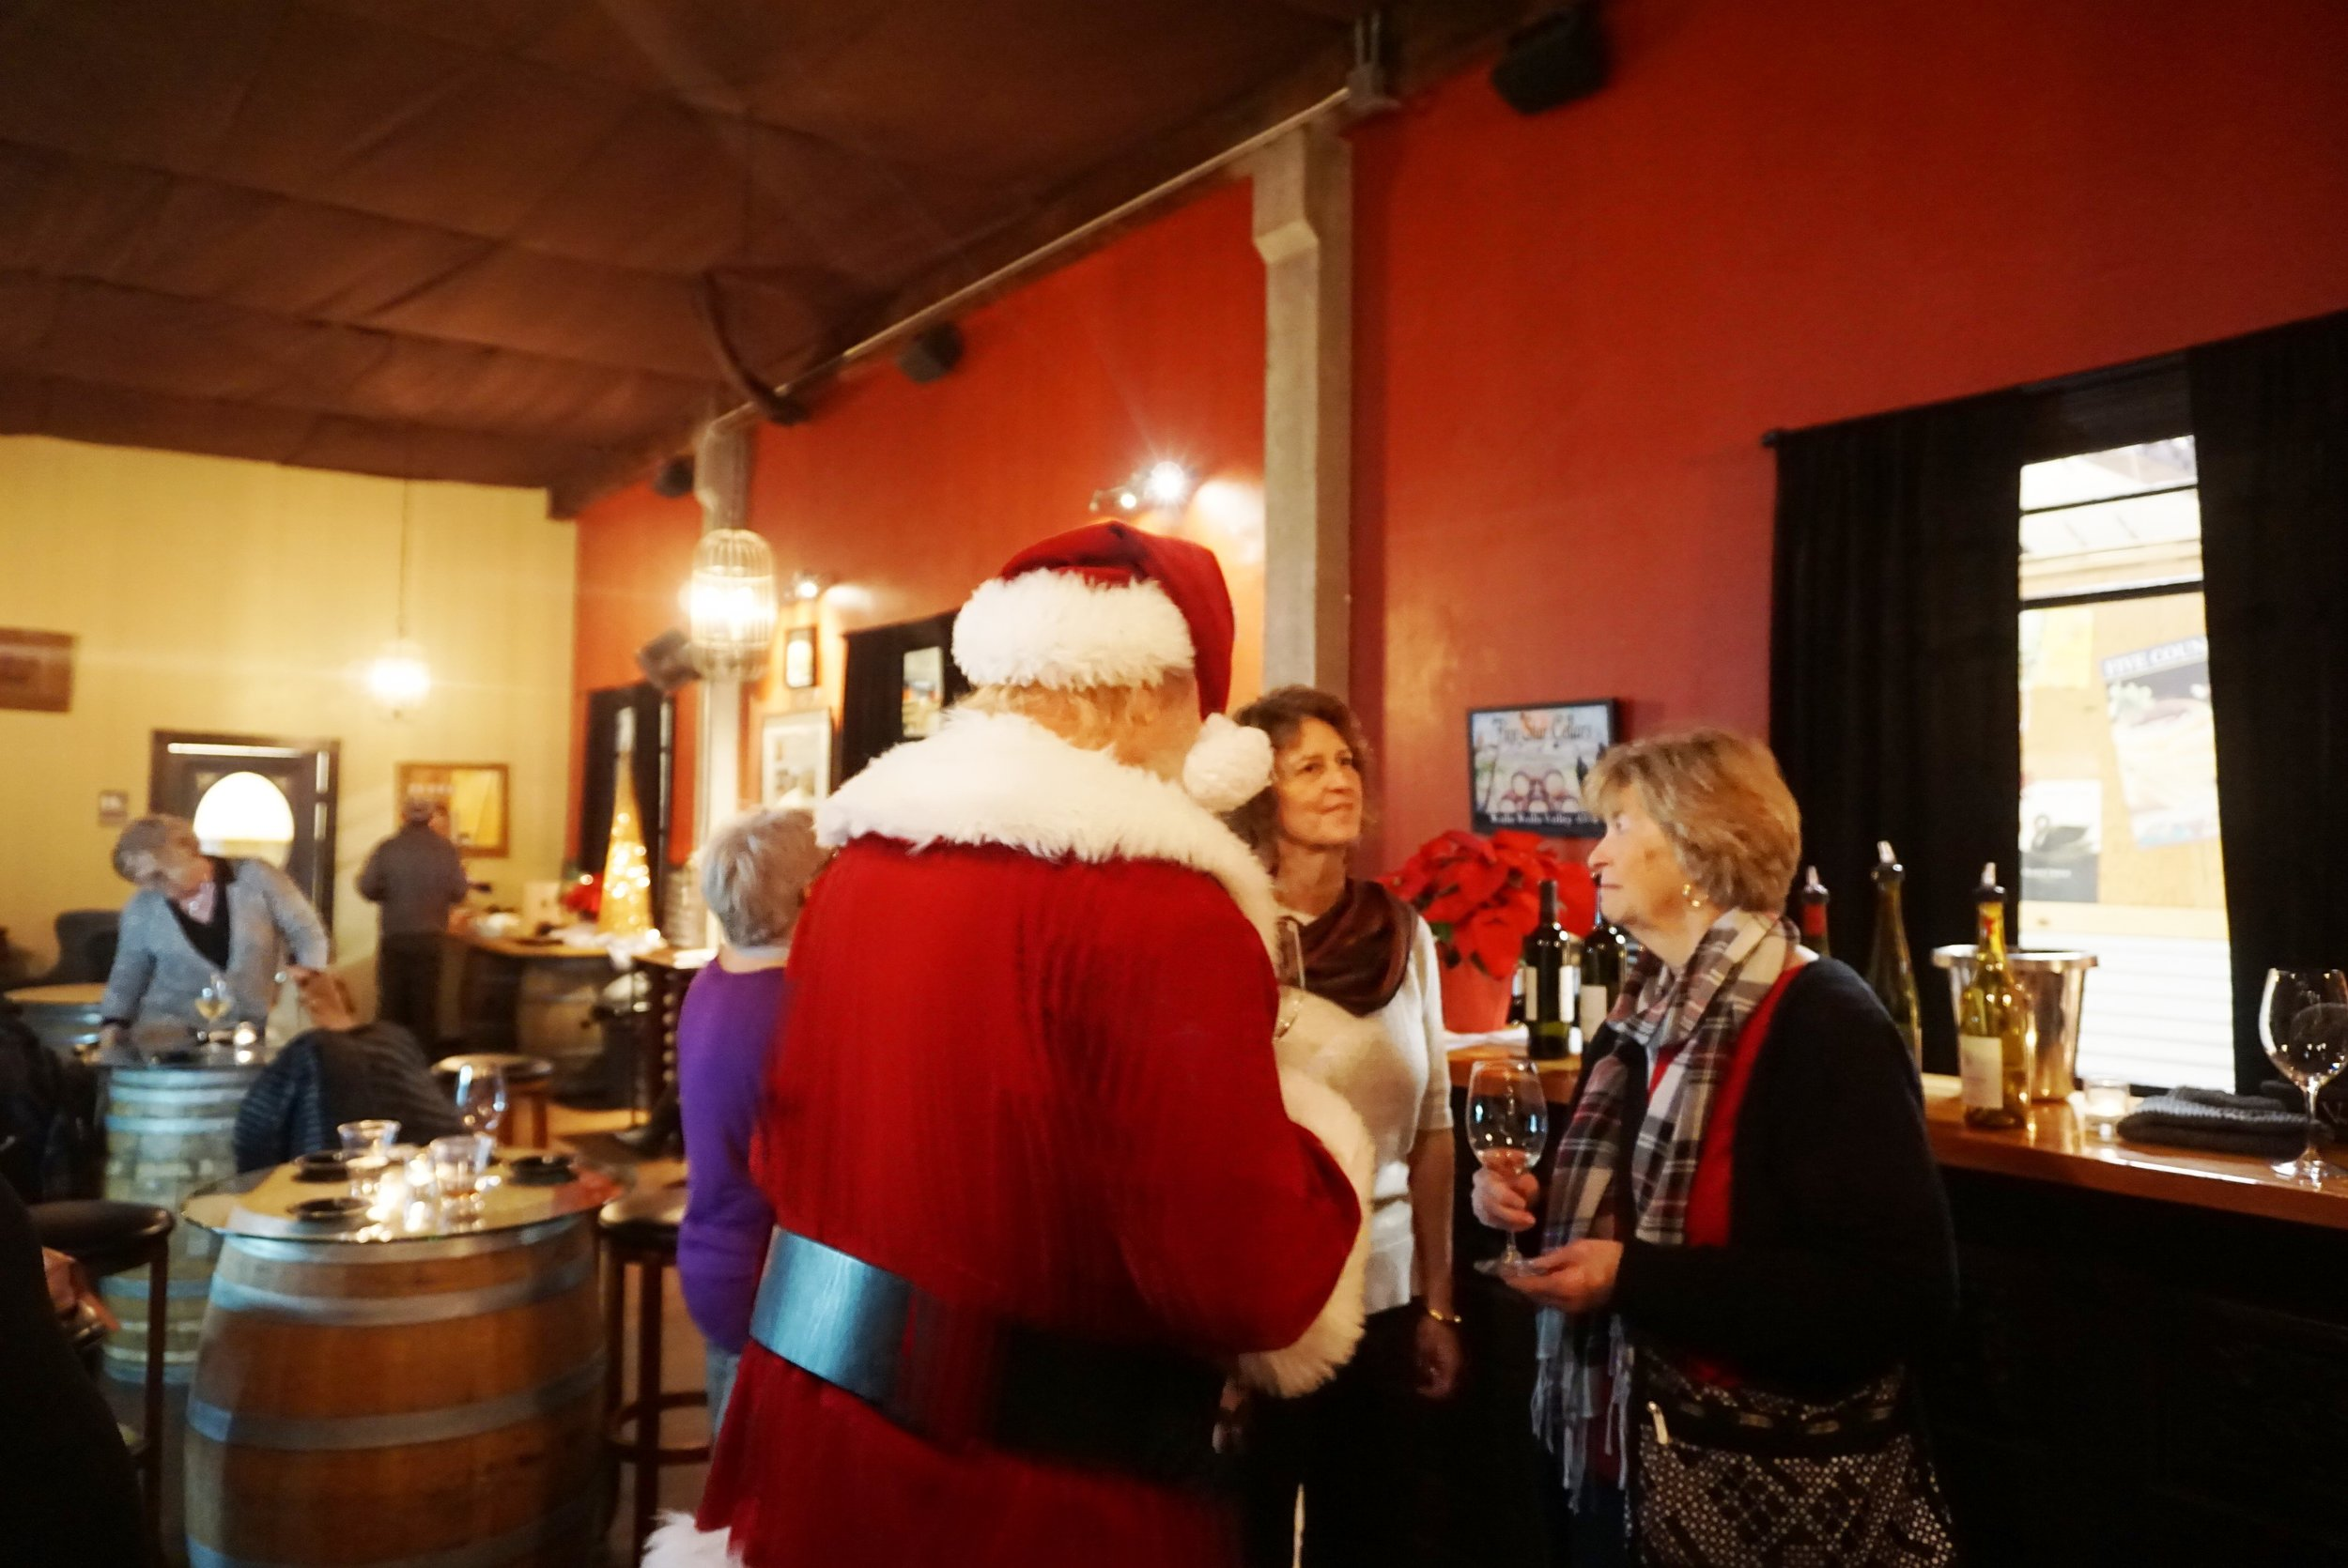 Even Santa Claus was on hand for the recent launch party of VanArnam Vineyards. Viki Eierdam